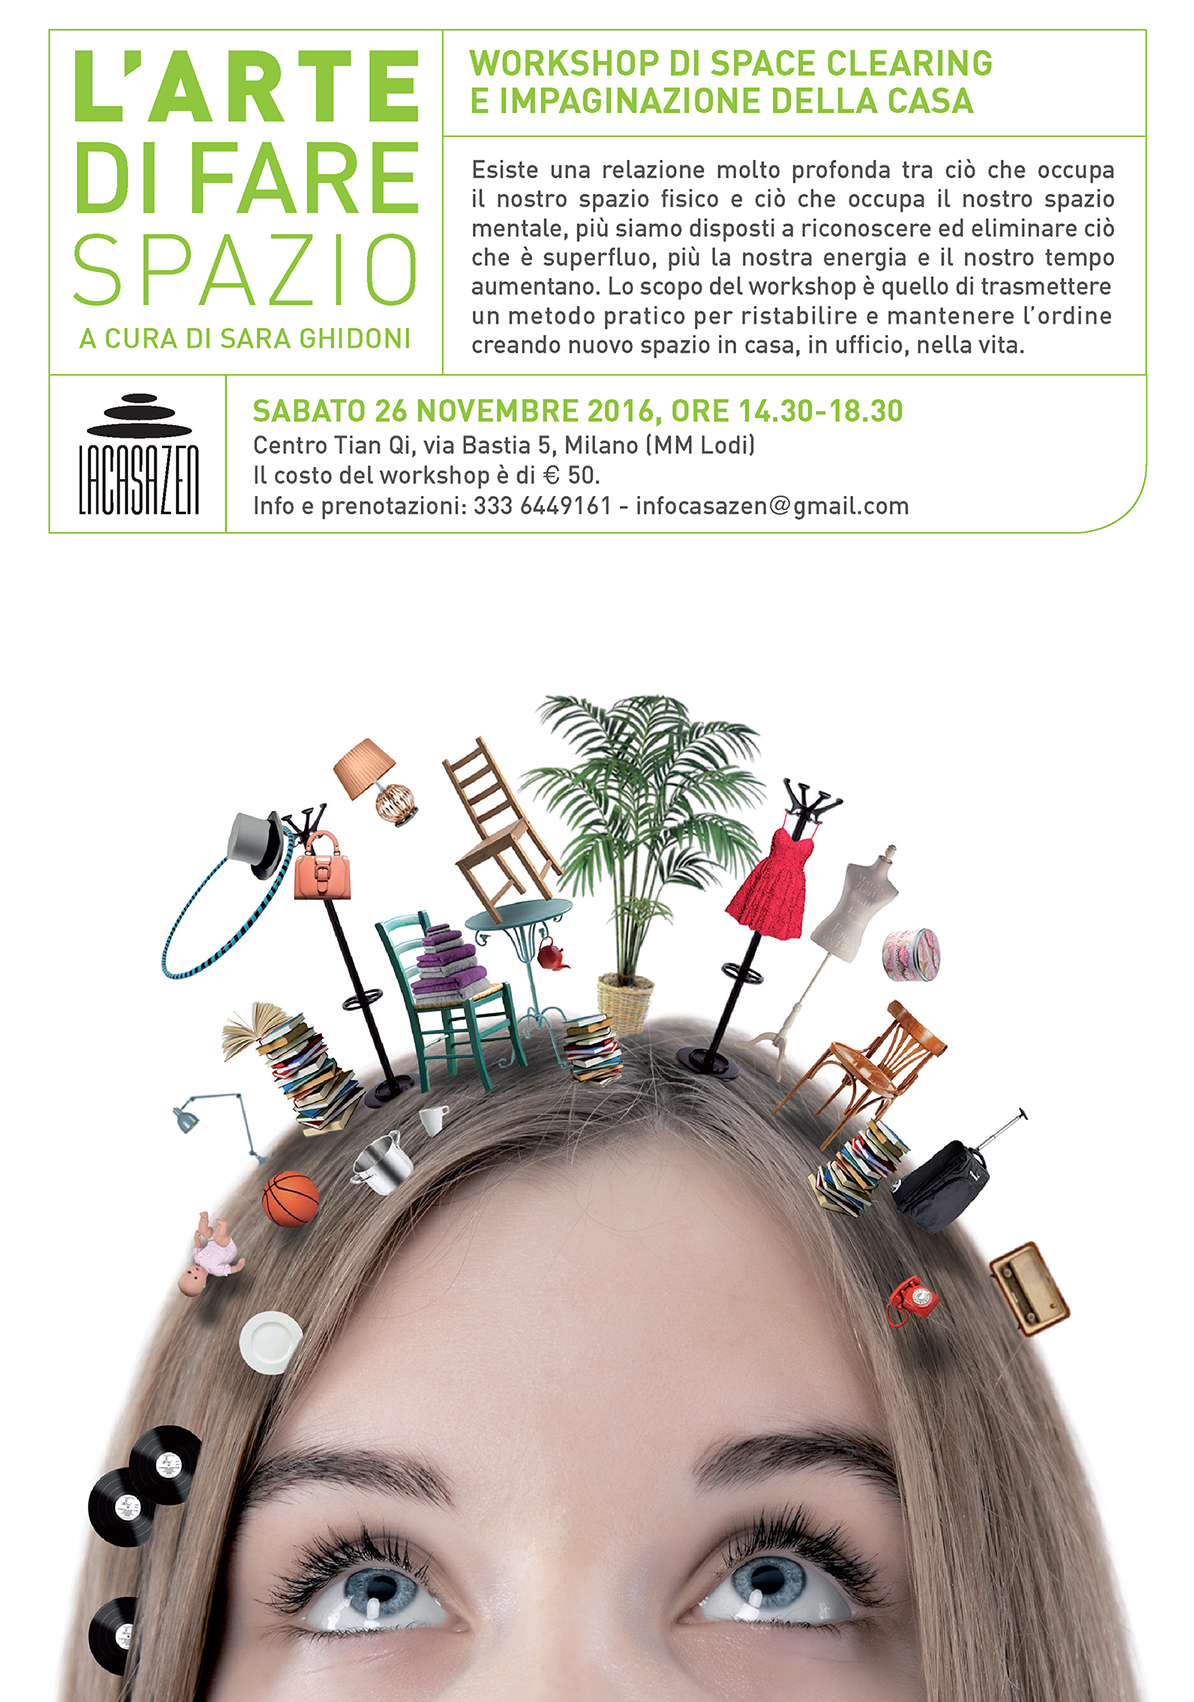 26/11/2016: l'arte di fare spazio - workshop di space clearing a cura di sara ghidoni